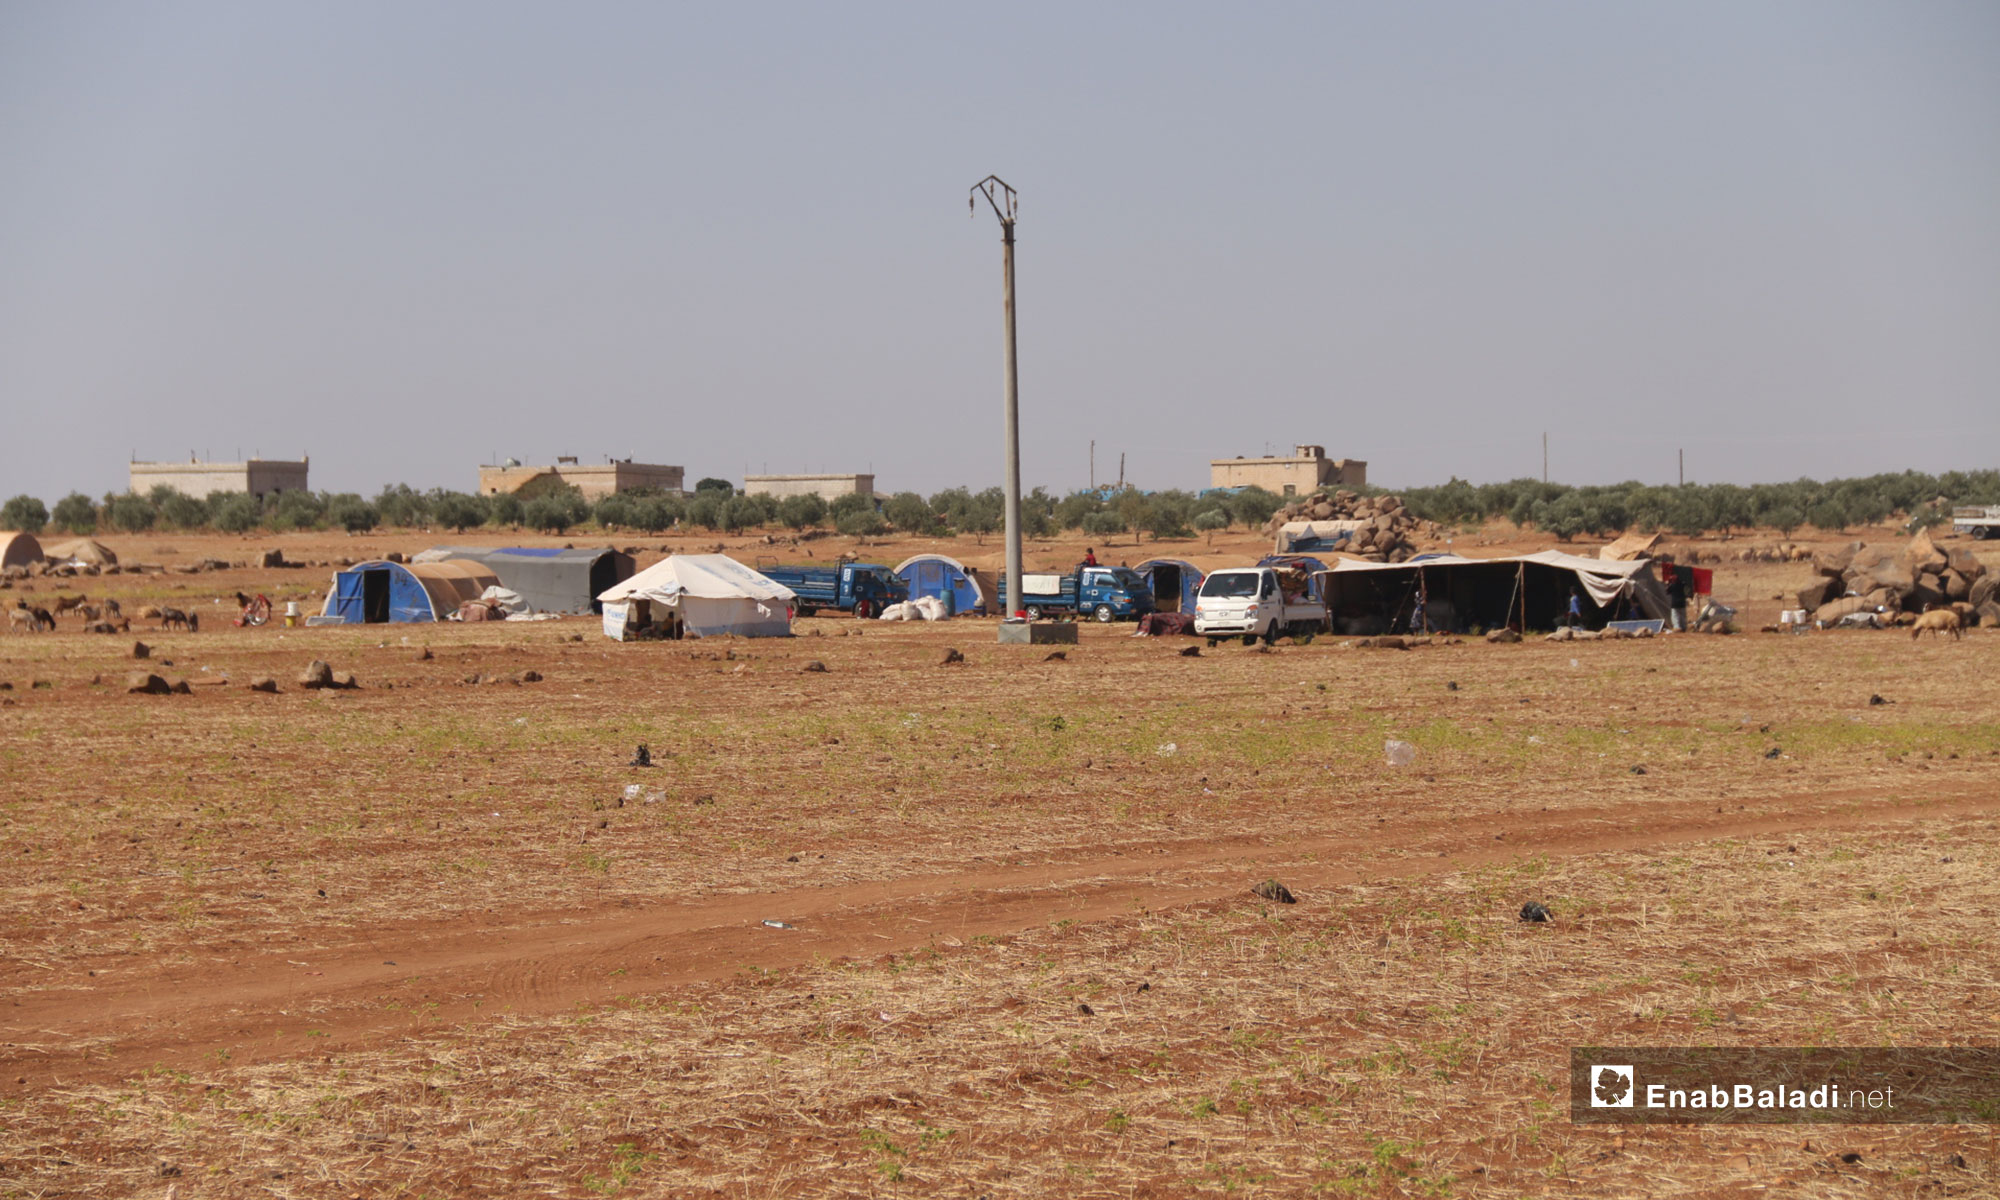 Families displaced from rural Idlib due to shelling to the town of Sarman near the Turkish supervision point in Idlib – September 12, 2018 (Enab Baladi)